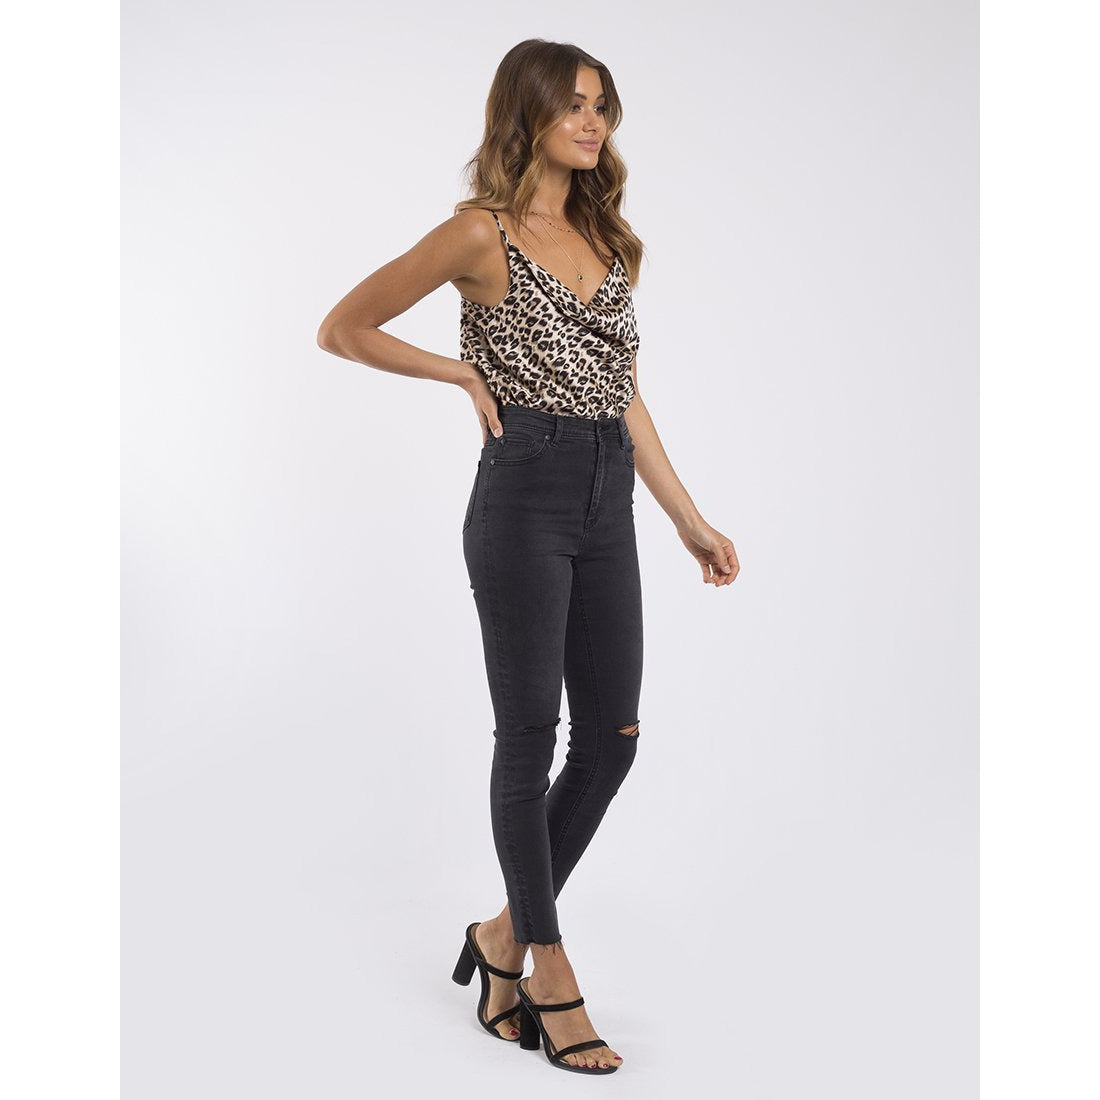 Leopard cami by Jorge